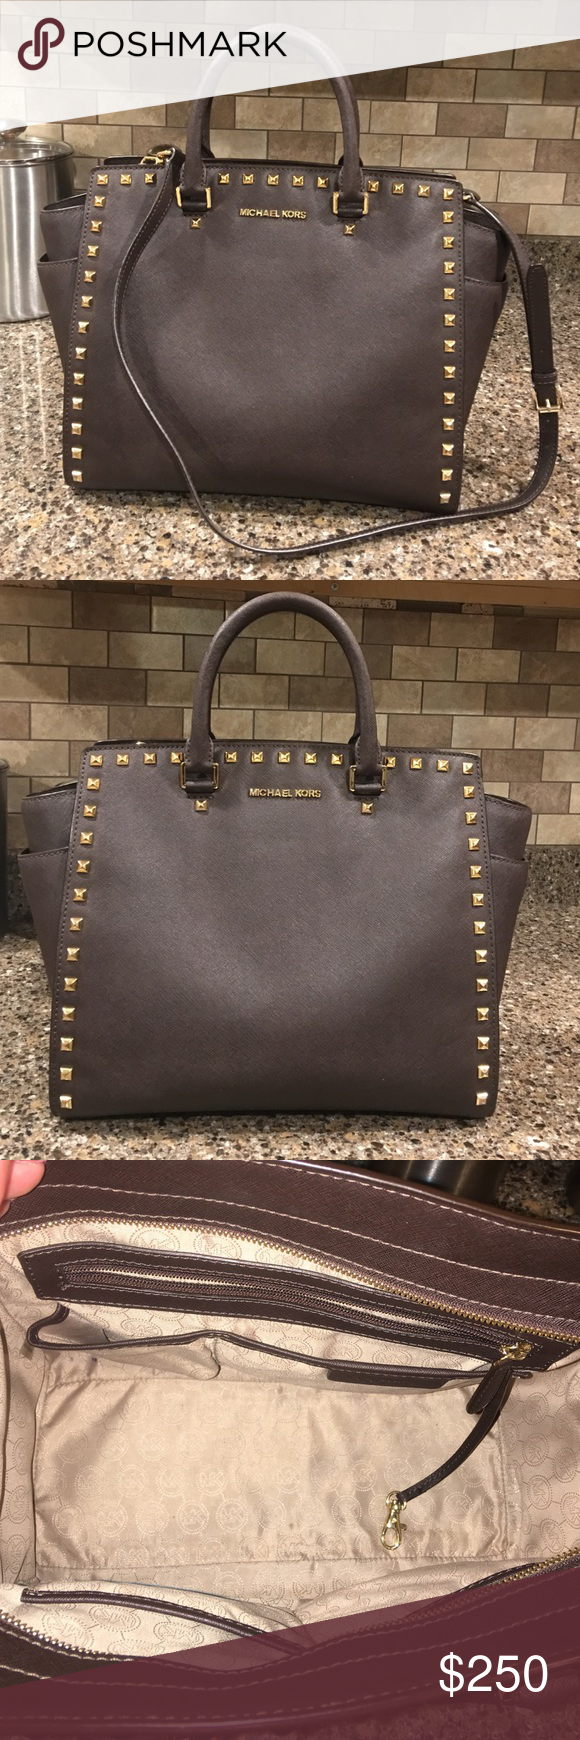 Michael Kors Large Studded Selma Saffiano Satchel My Posh Picks Leather Coklat This Is A Gorgeous Chocolate Brown Bag With Gold